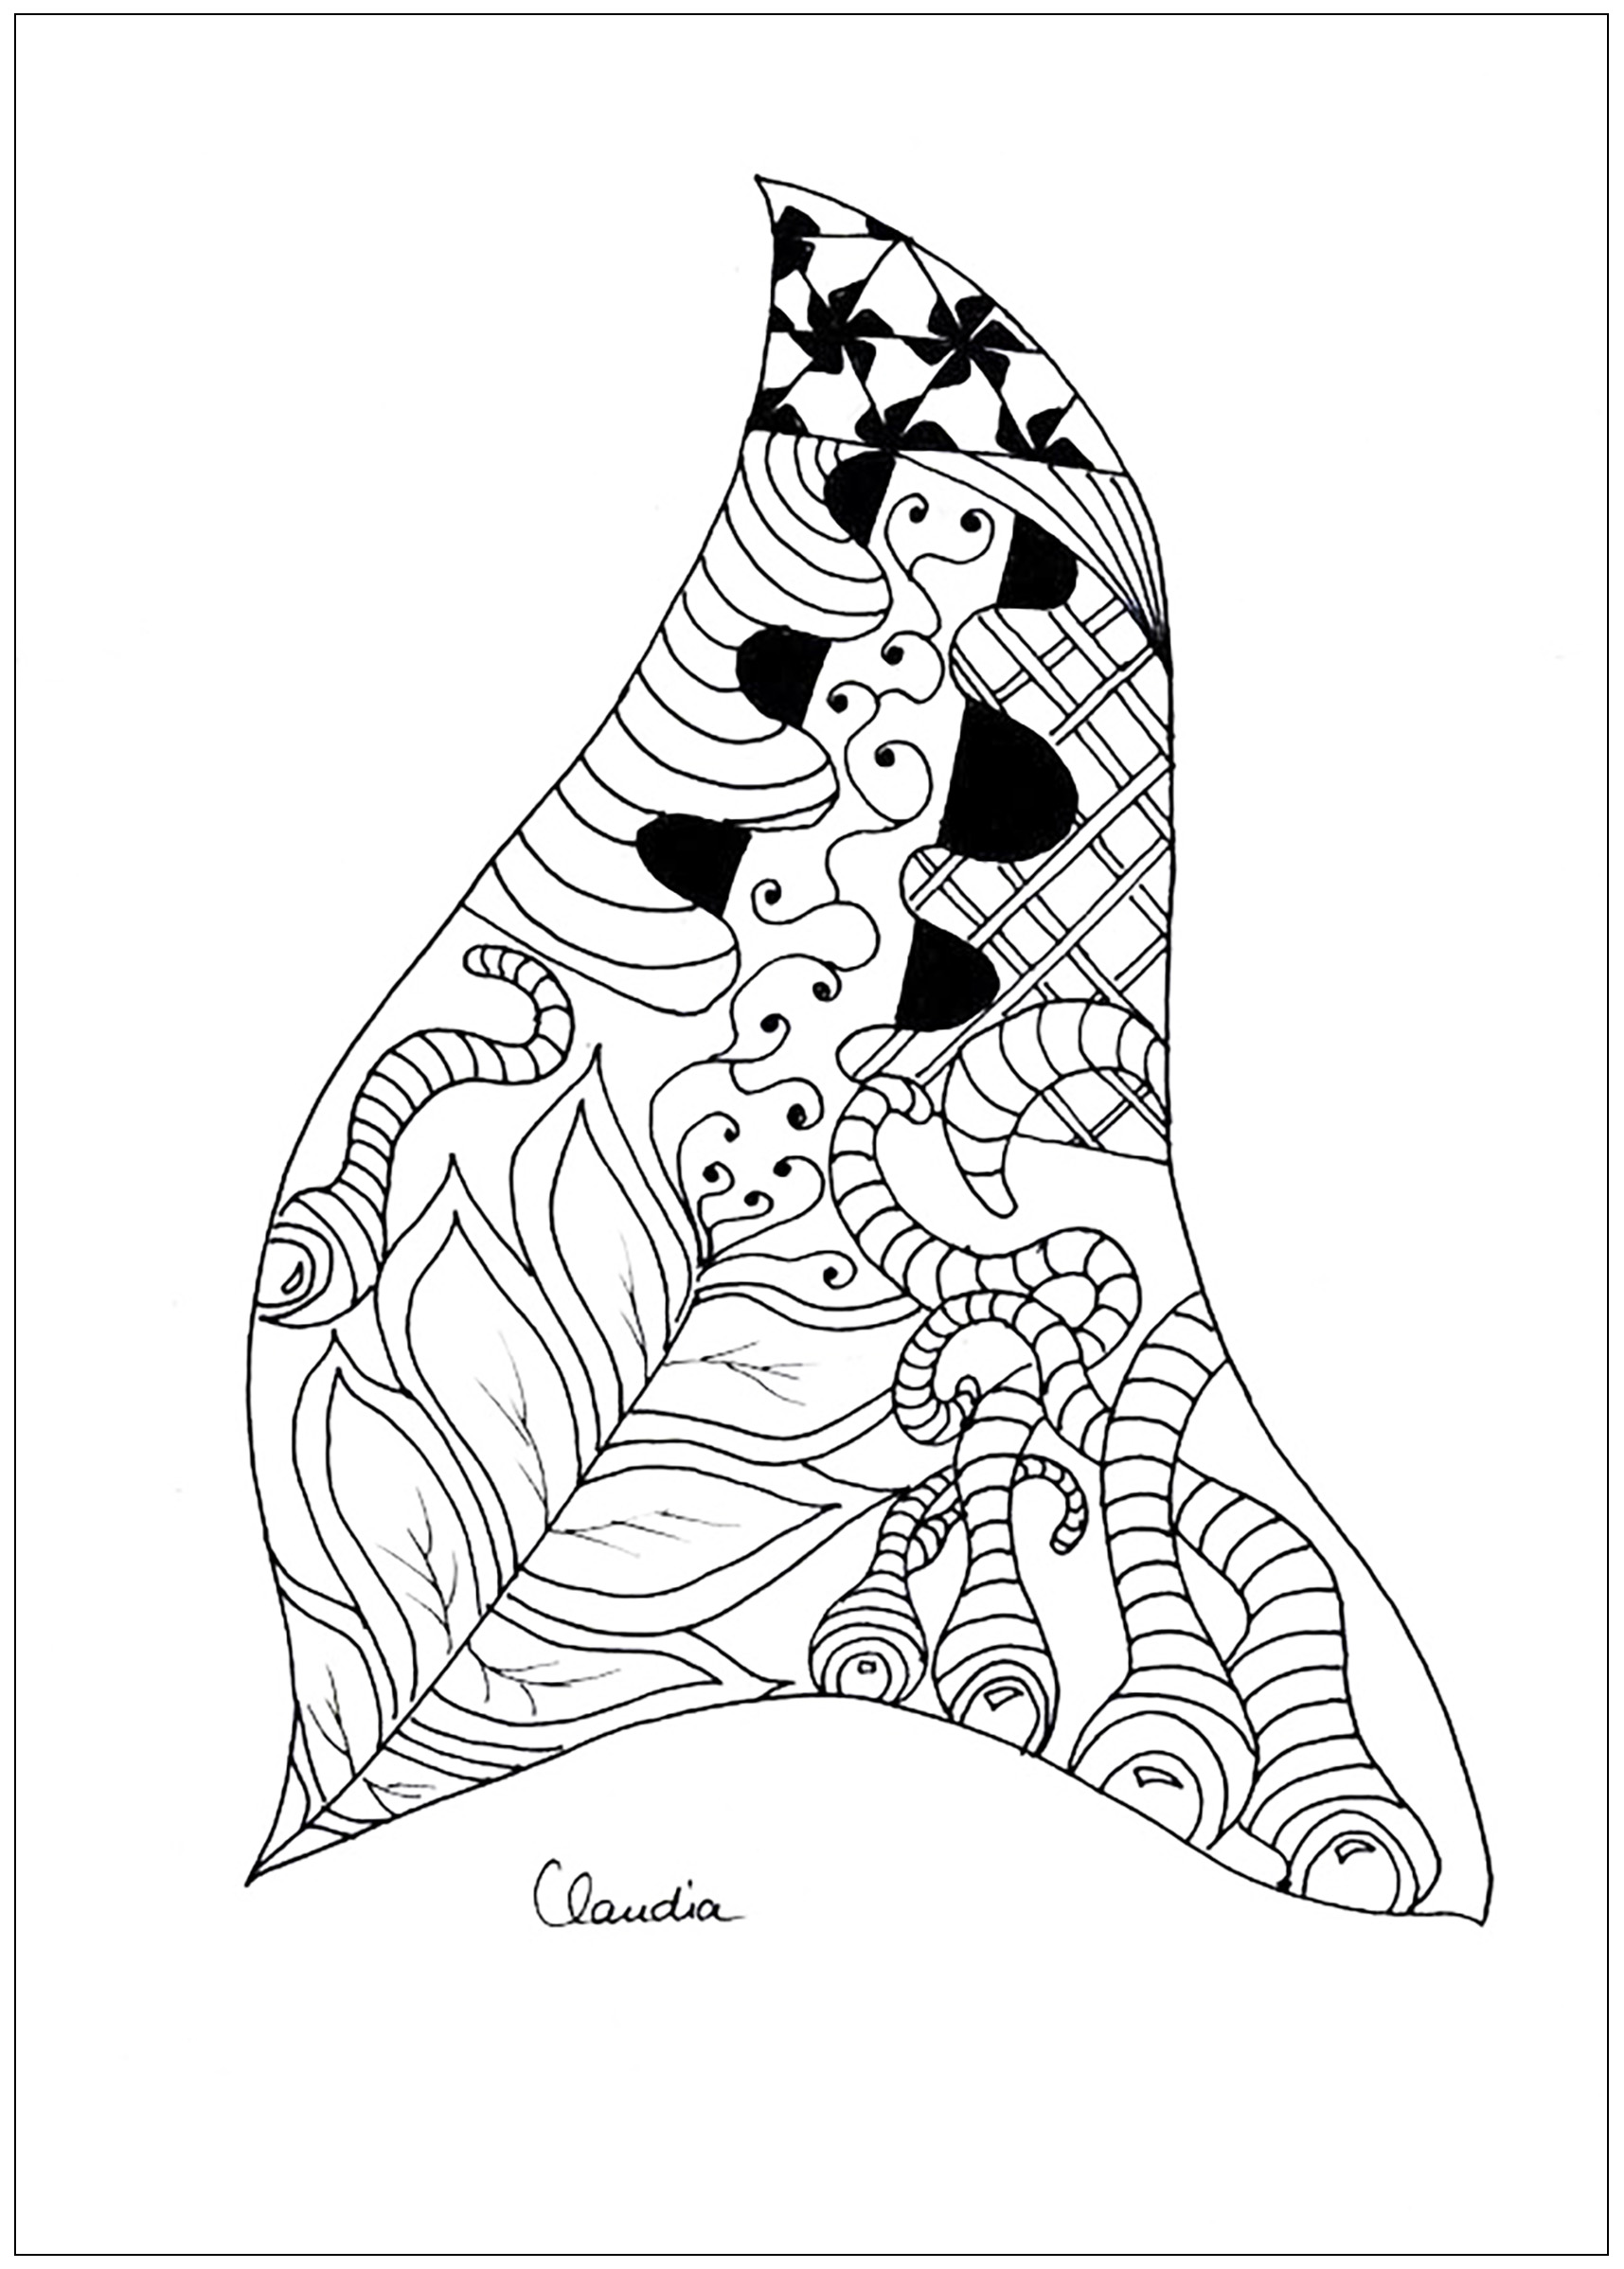 Disegni da colorare per adulti : Zentangle - 43